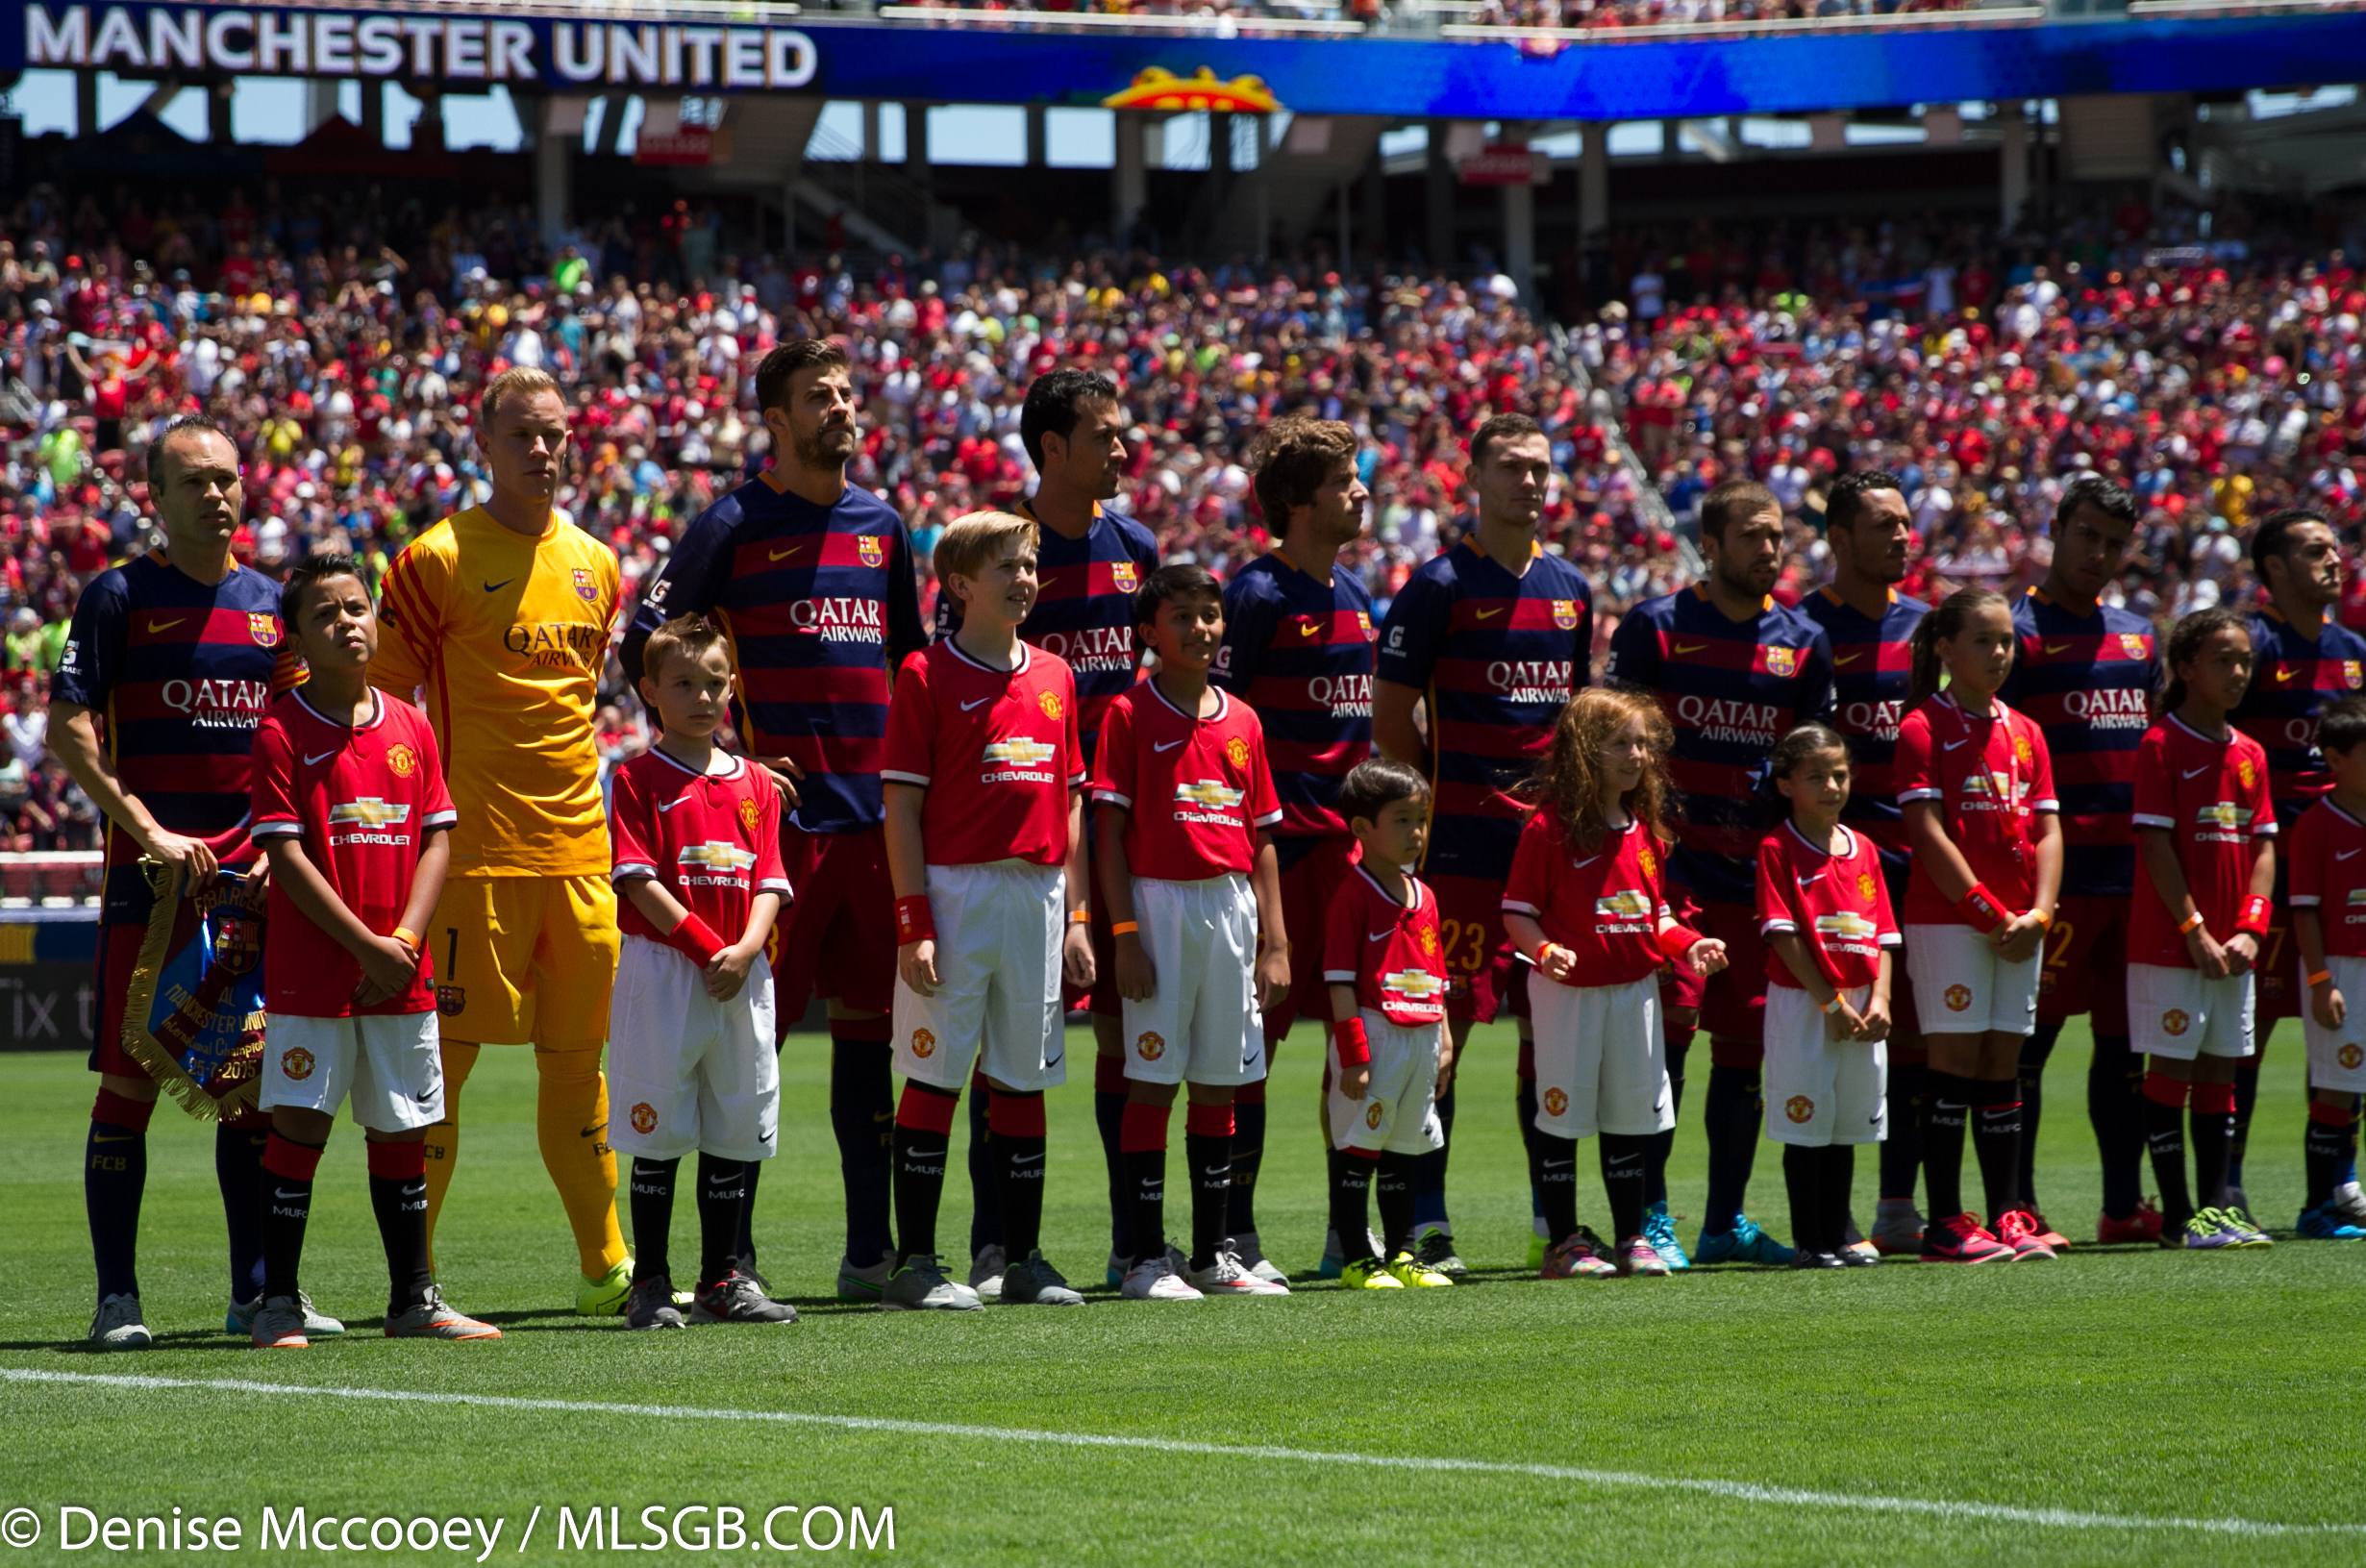 Barcelona Vs: PHOTOS: Exclusive Images From Manchester United's Win